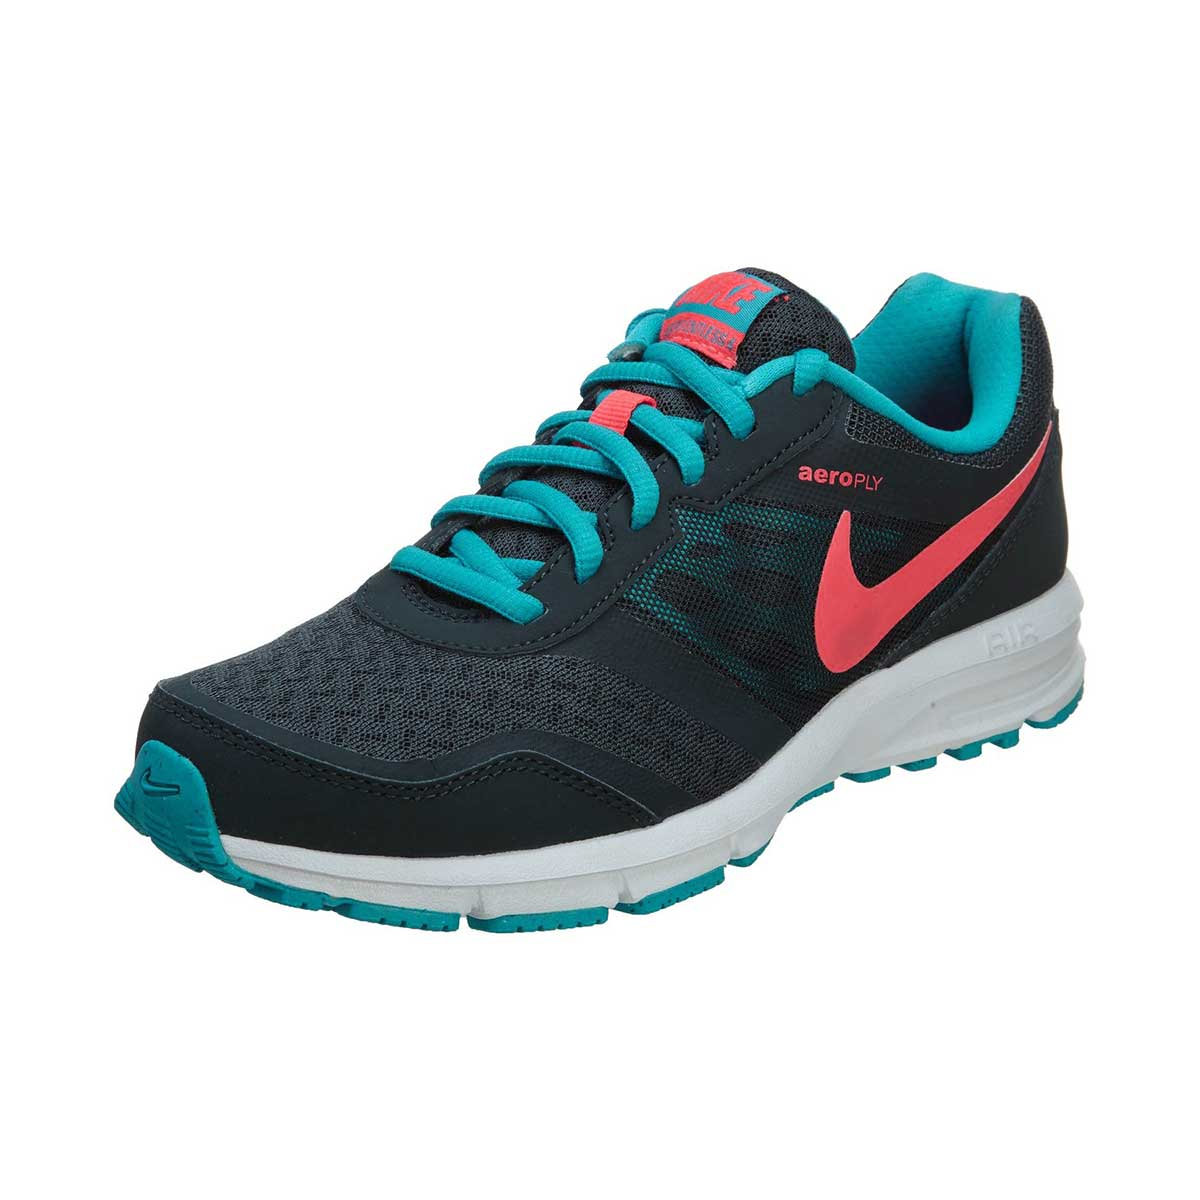 Buy Nike Air Relentless 4 Womens Running Shoes Online India c617499c10